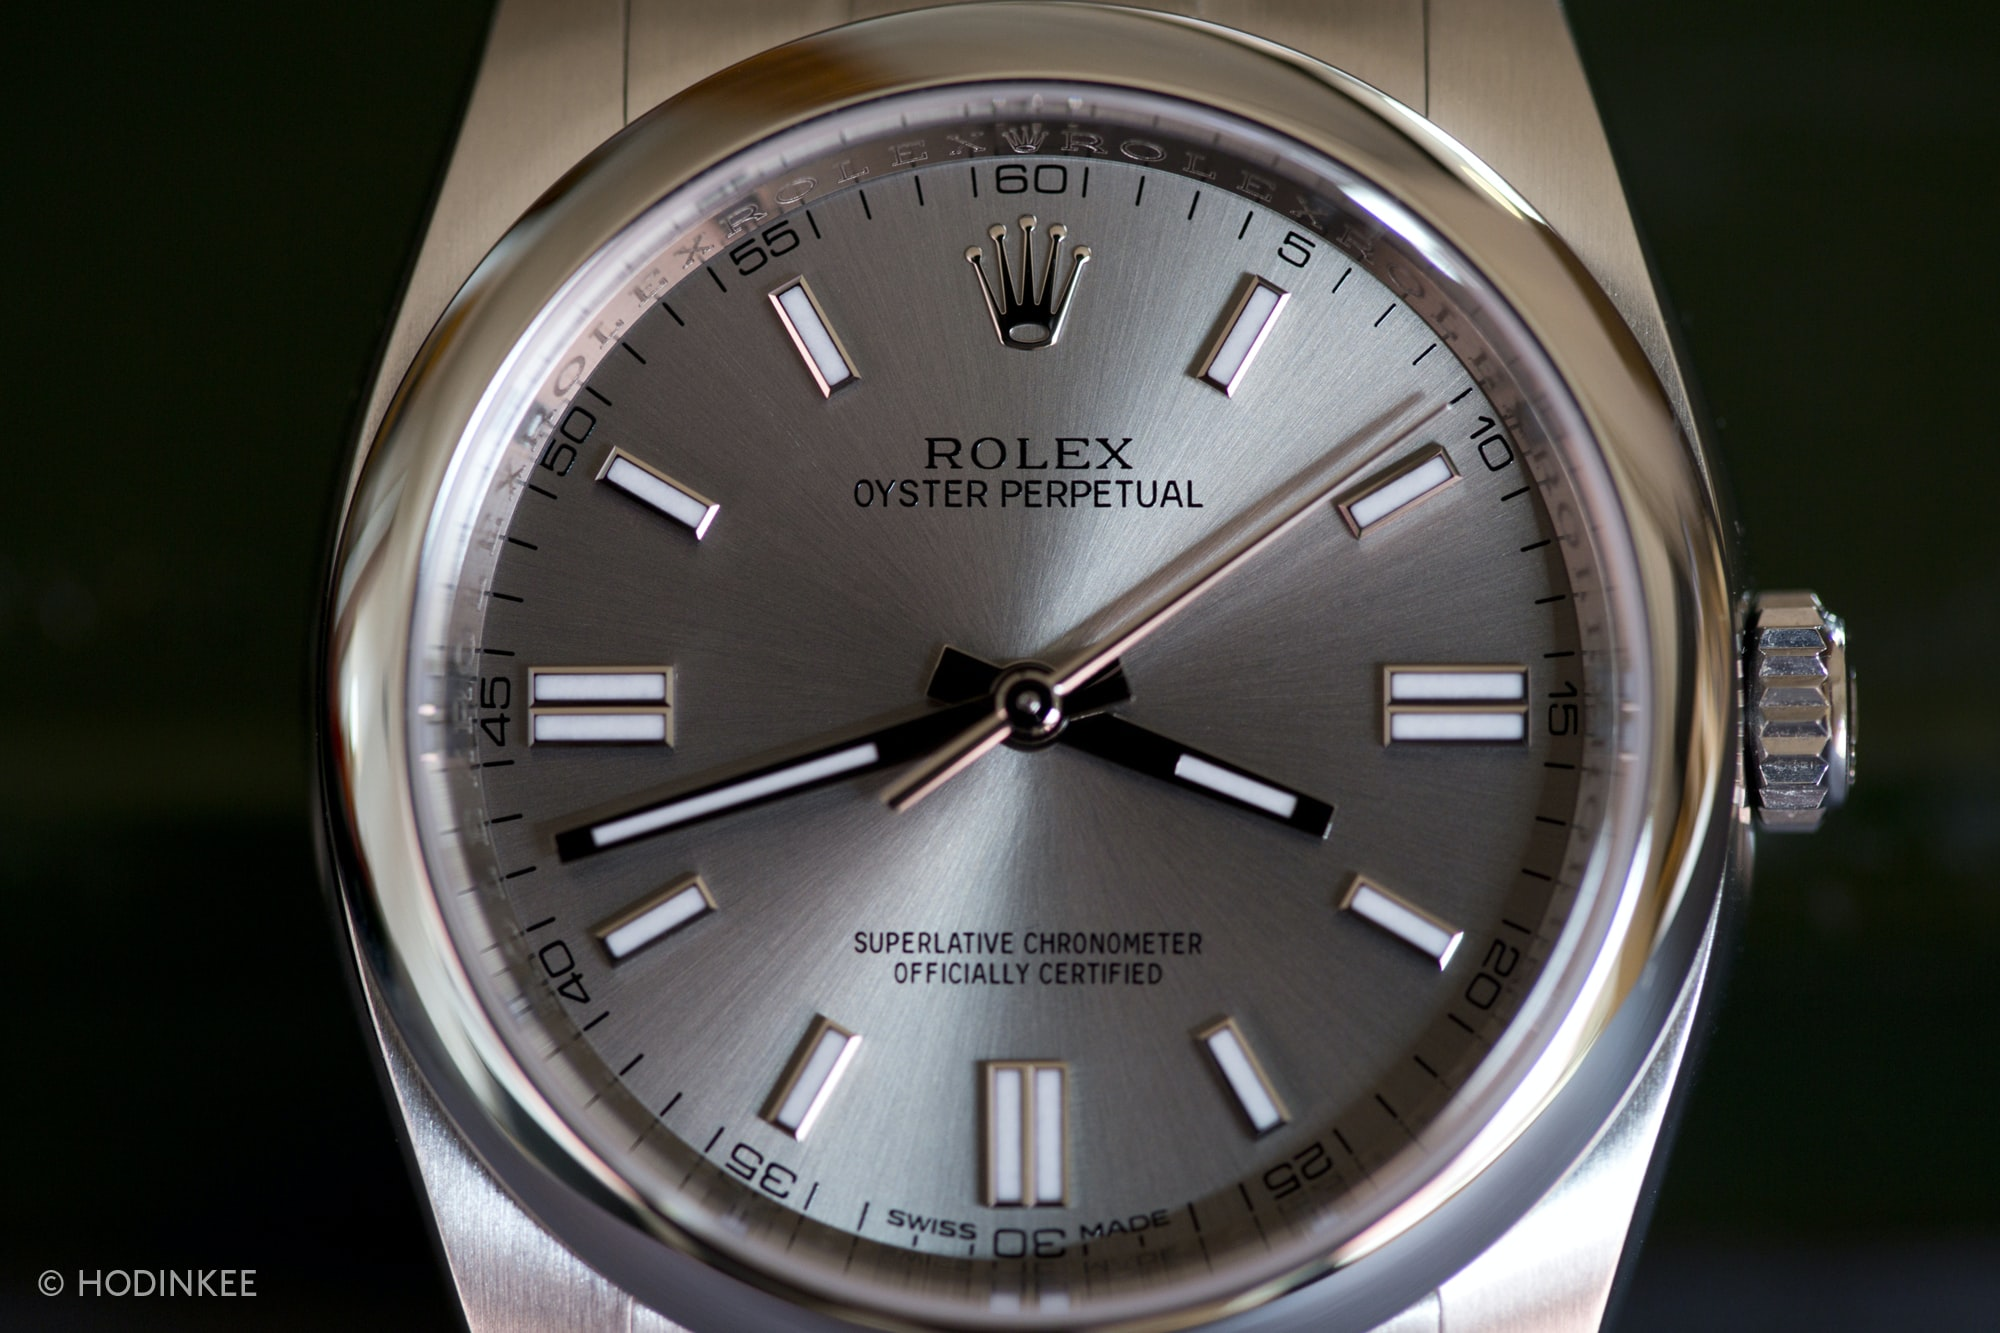 Watch Stuff You Loved To Fight Over In 2015 Watch Stuff You Loved To Fight Over In 2015 rolex 36 mm 06